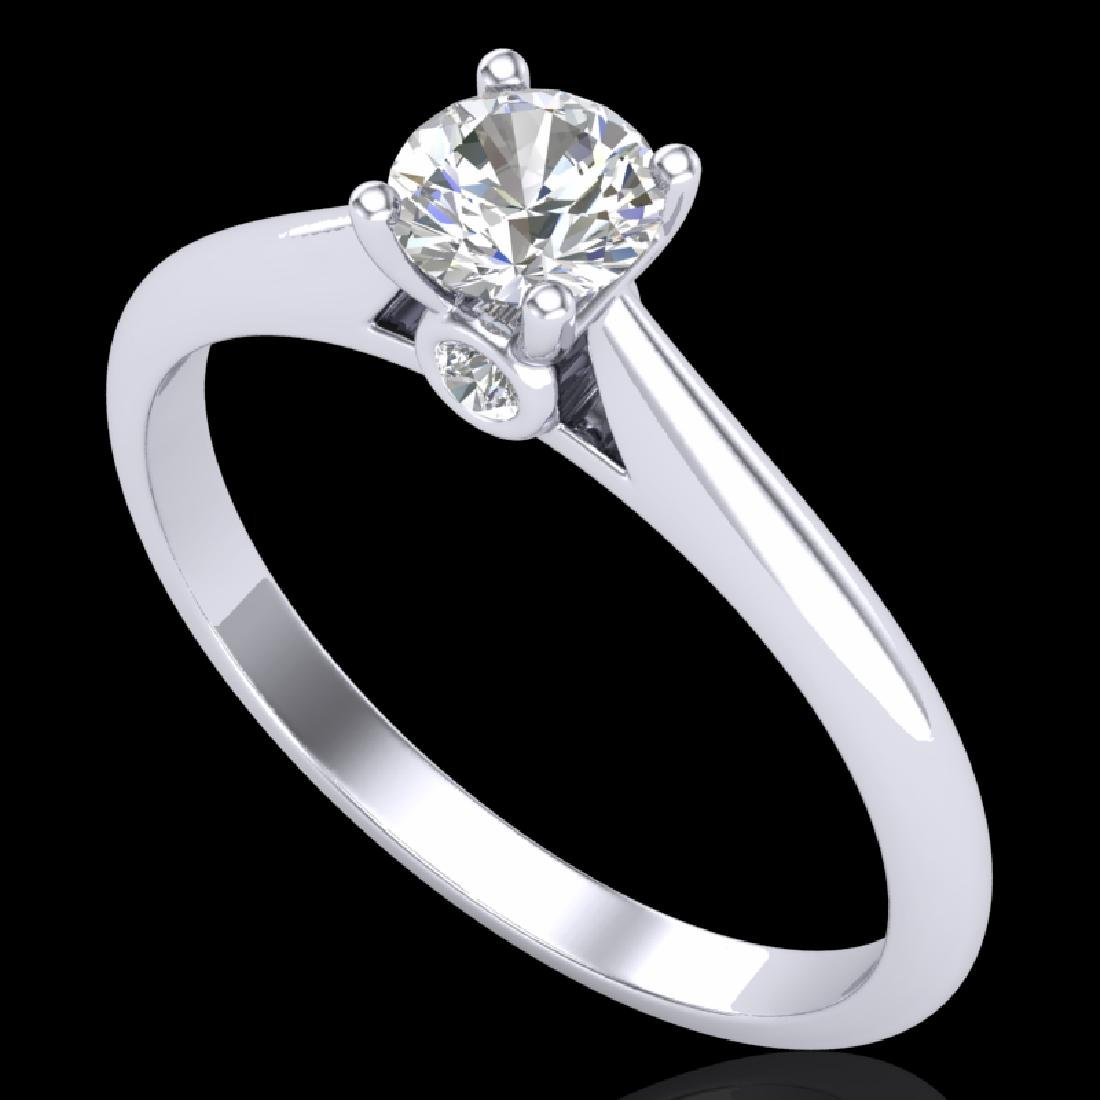 0.4 CTW VS/SI Diamond Solitaire Art Deco Ring 18K White